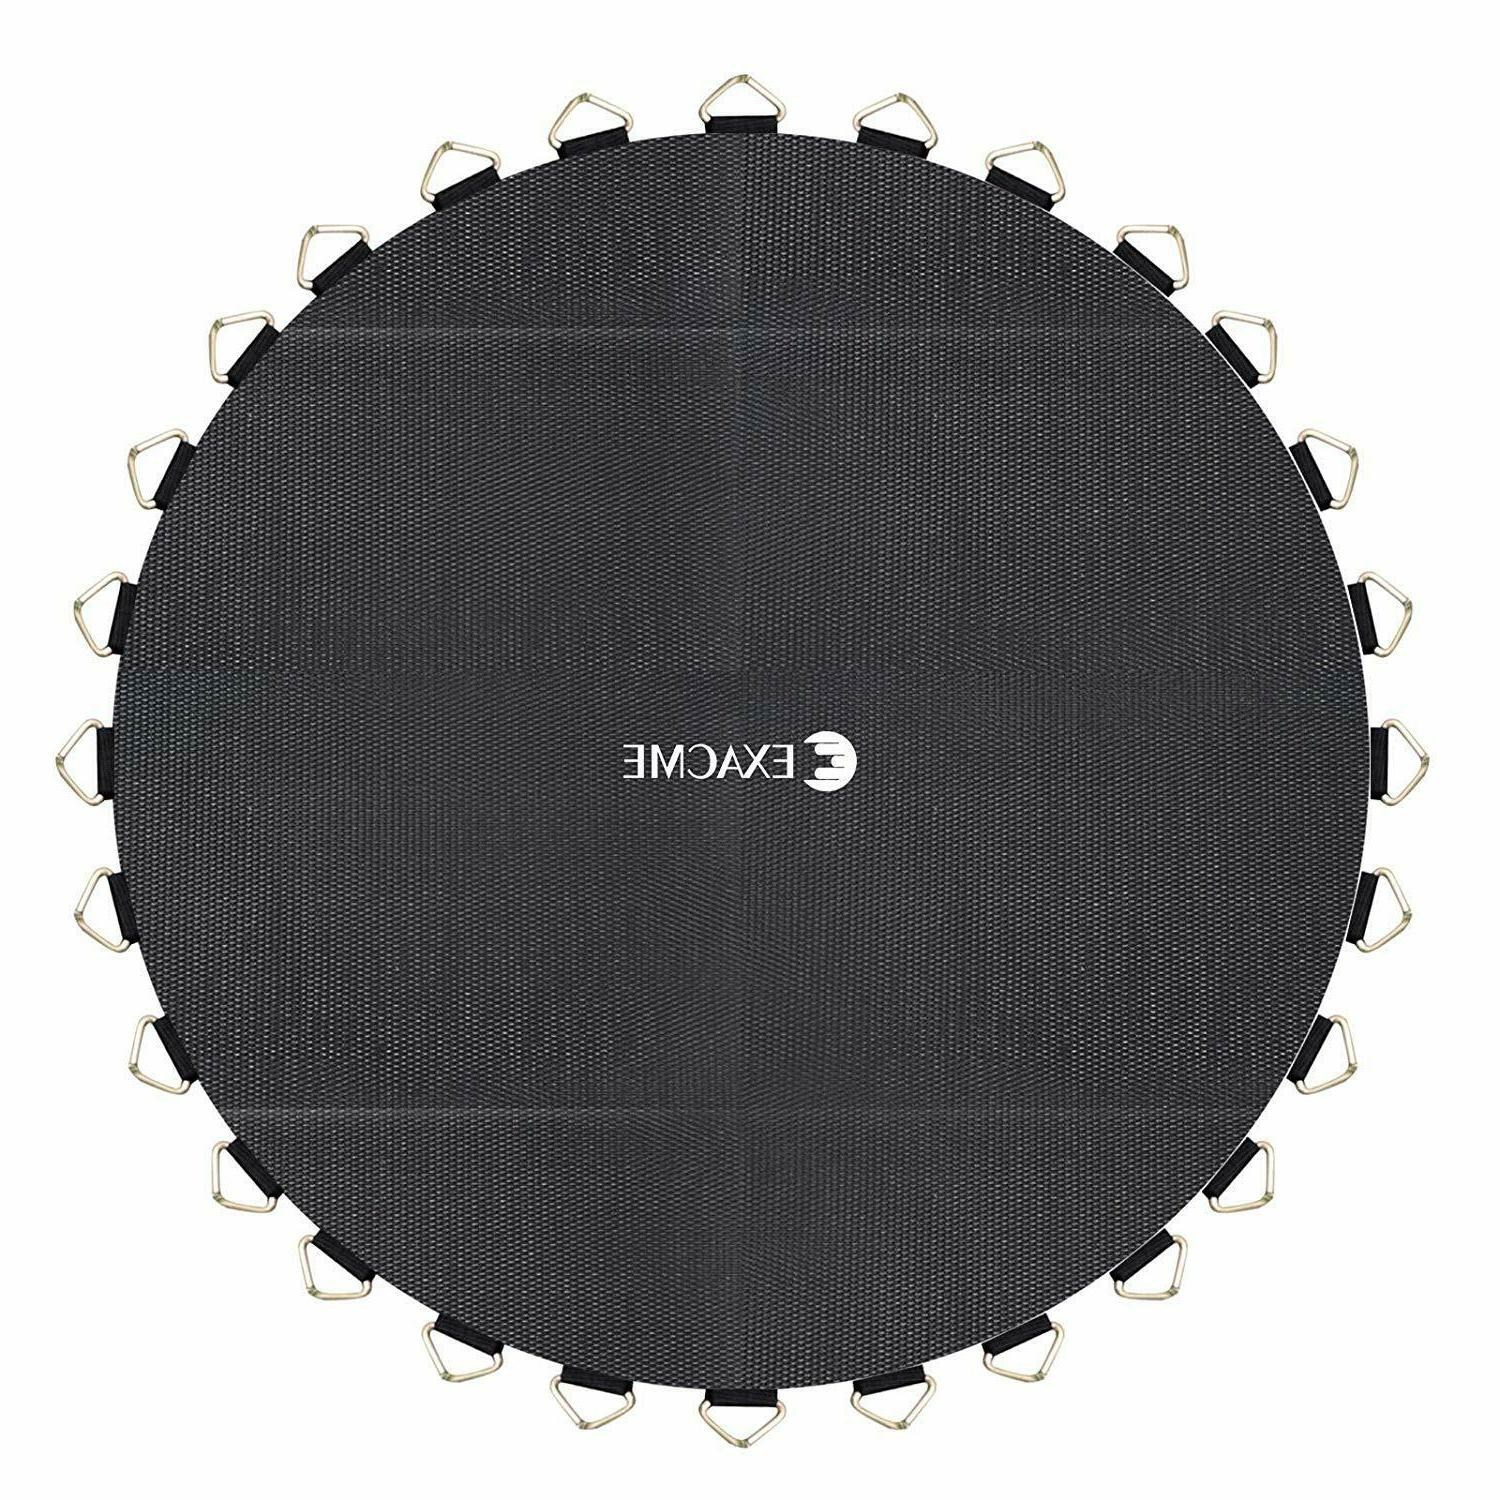 weatherproof jumping mat round for 10 16